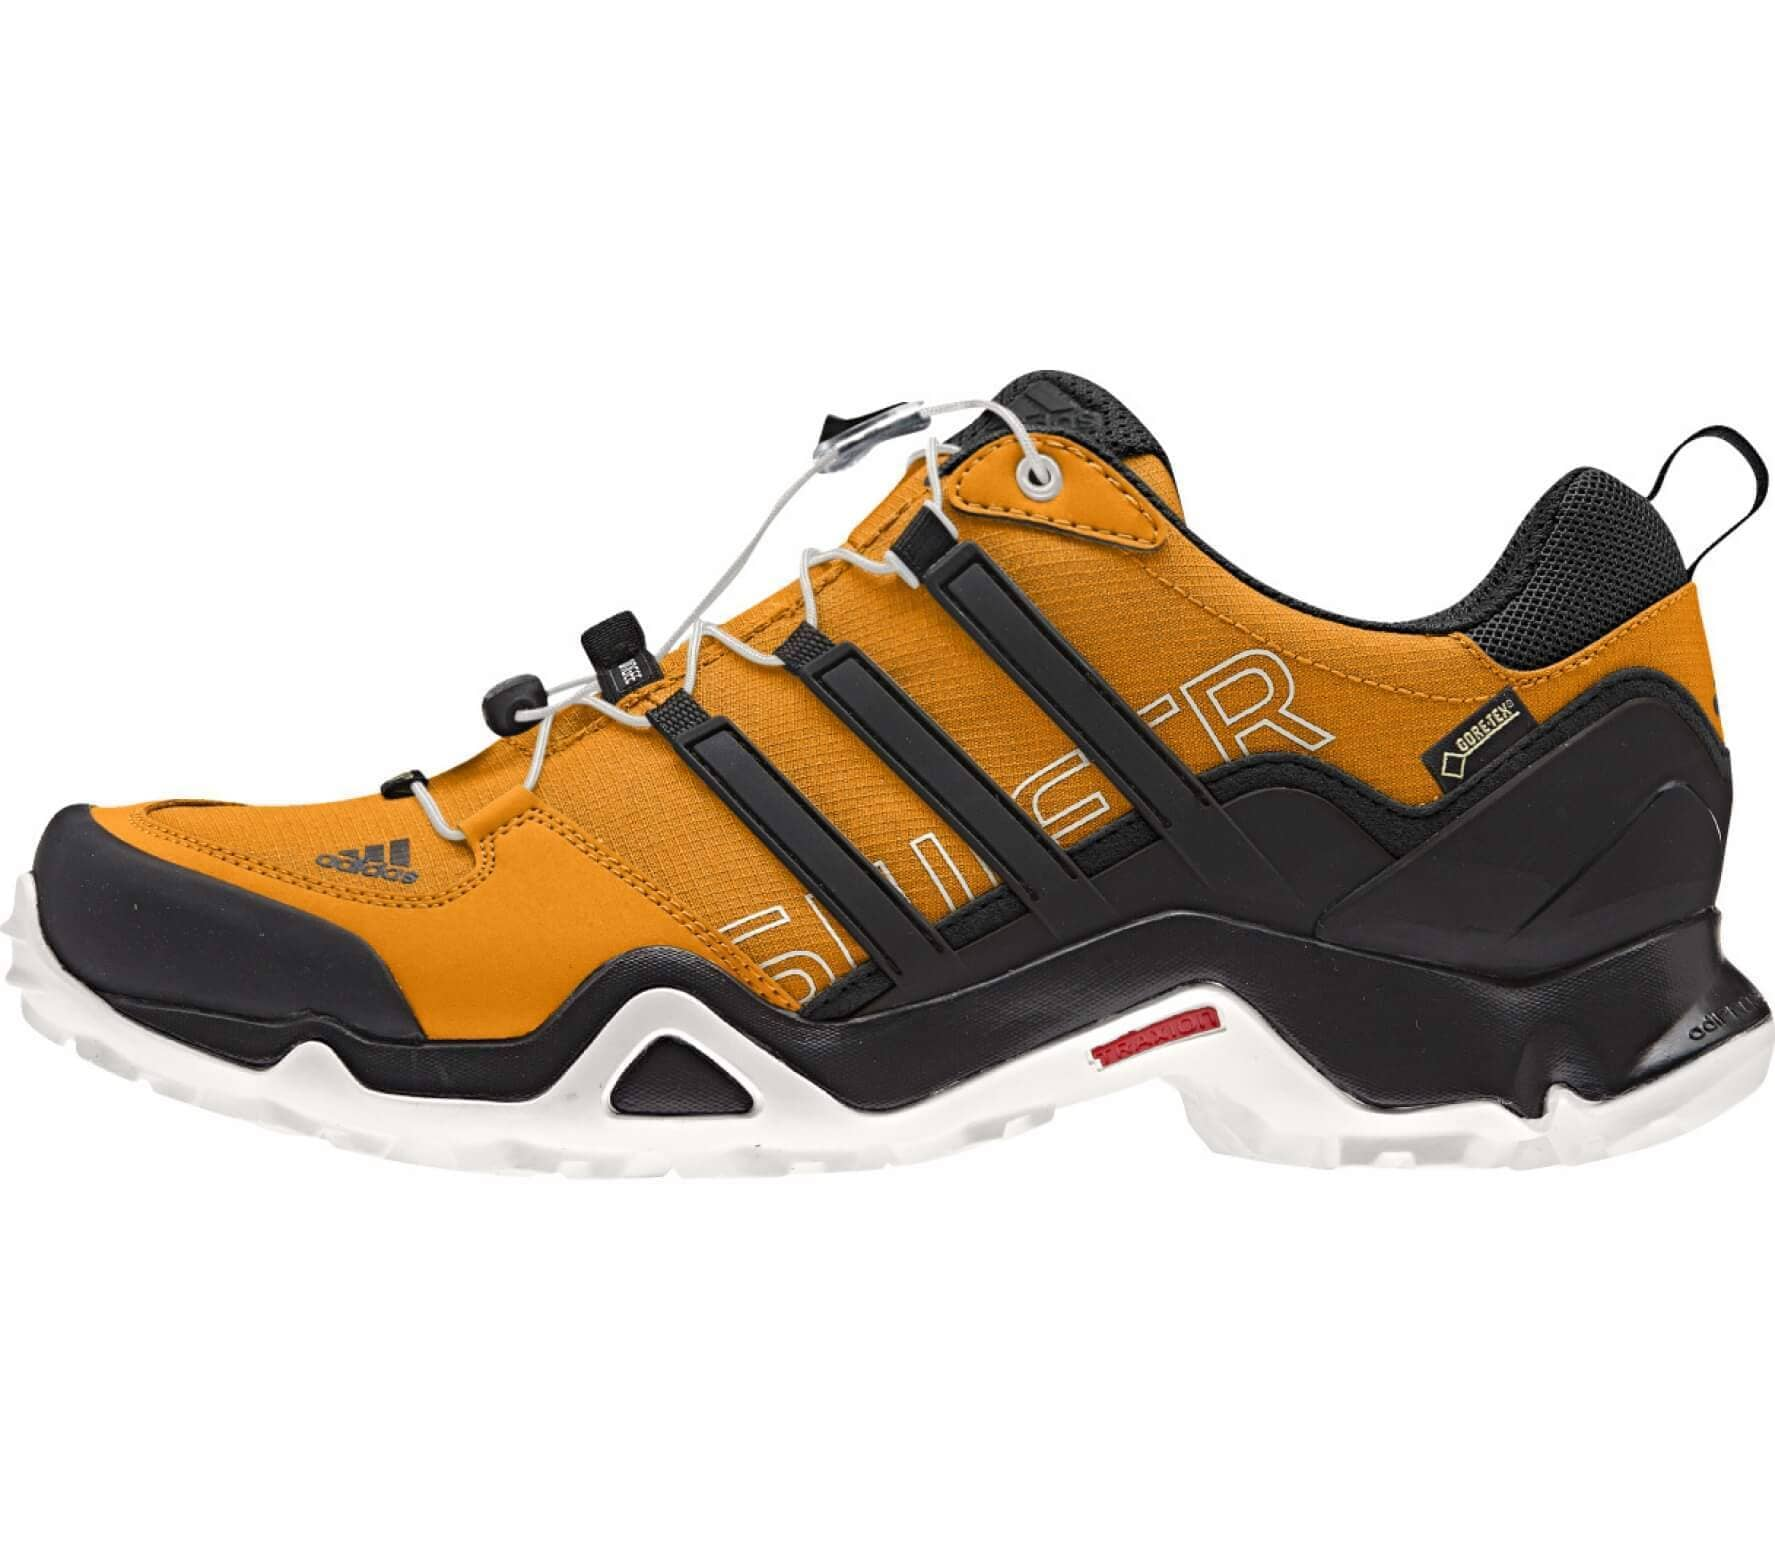 30de7b0a5 Adidas - Terrex Swift R GTX men s multi-functional shoes (orange ...